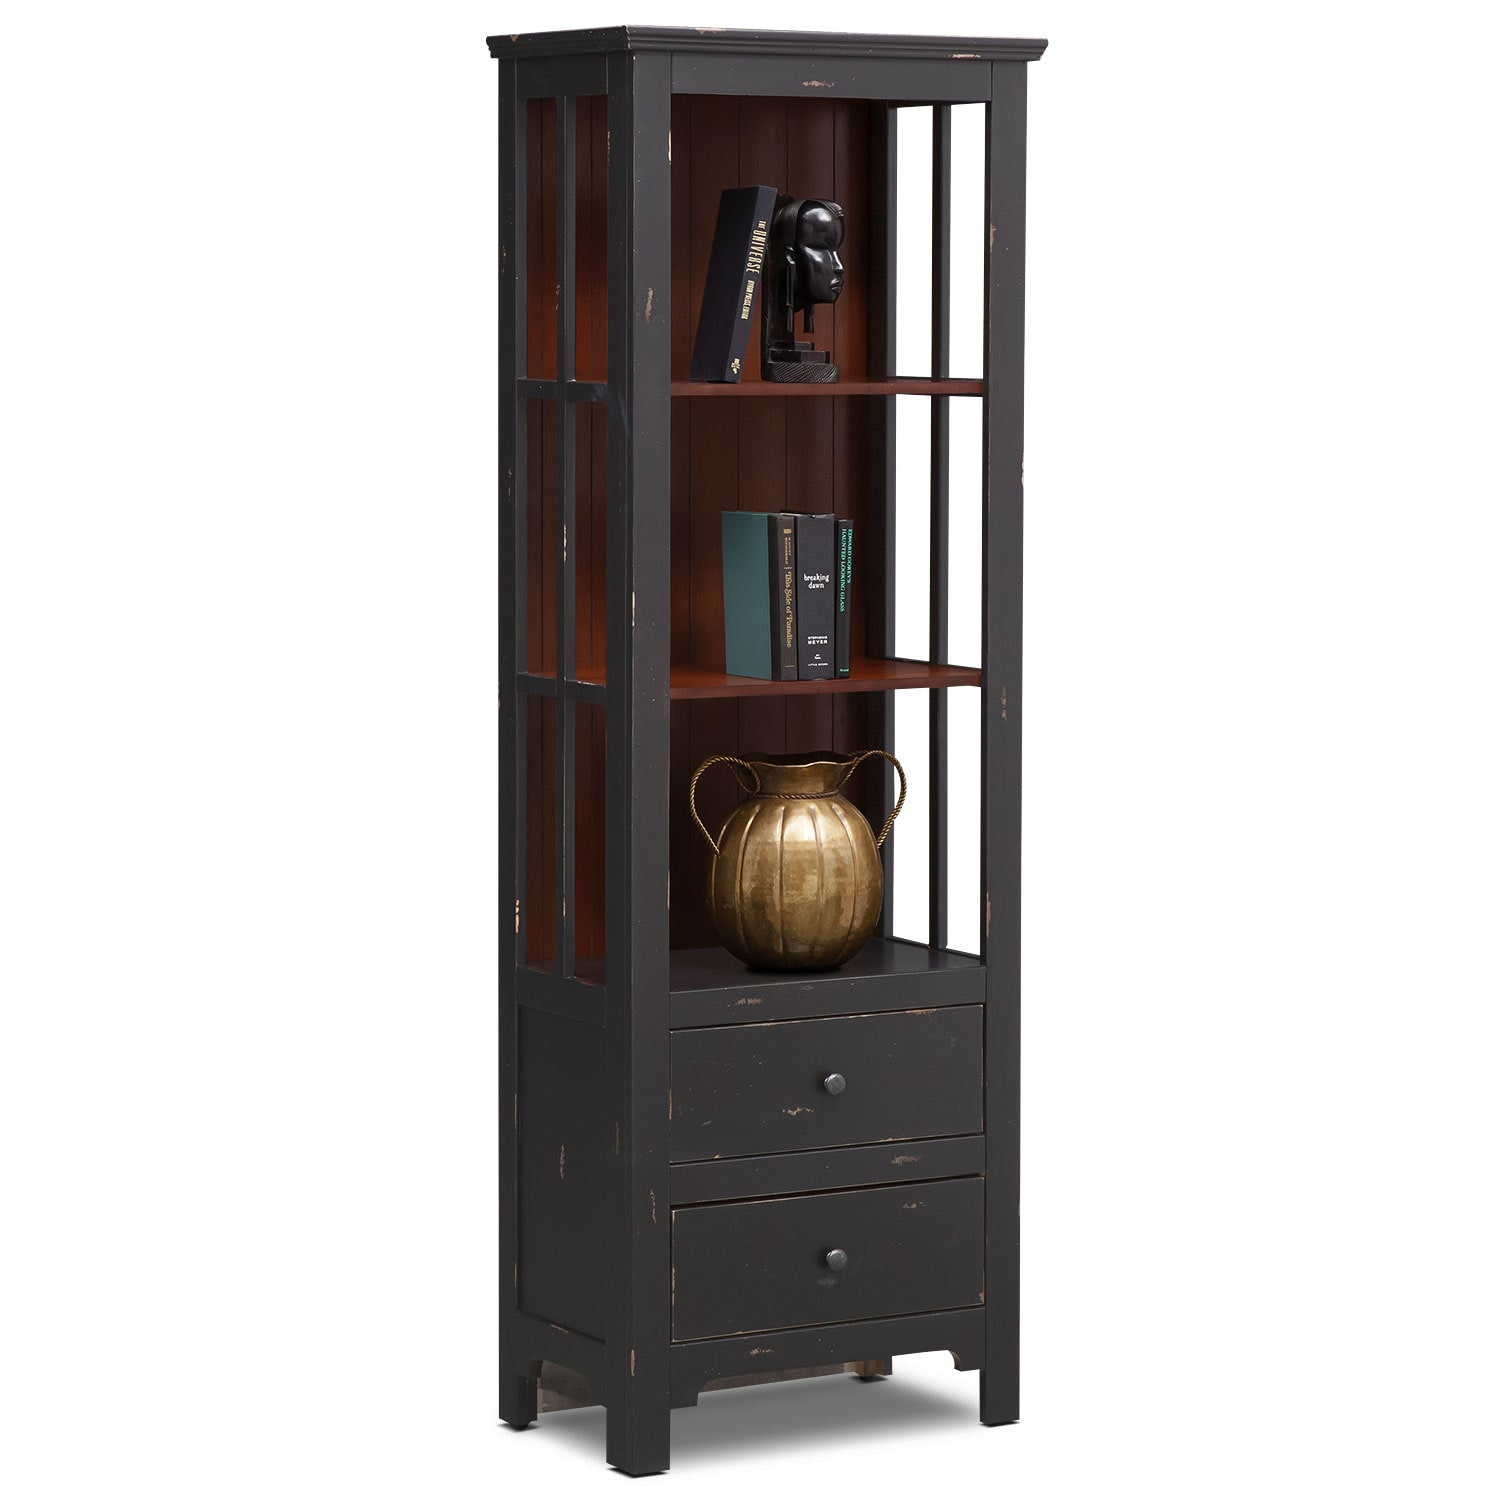 Keefe Bookcase - Black